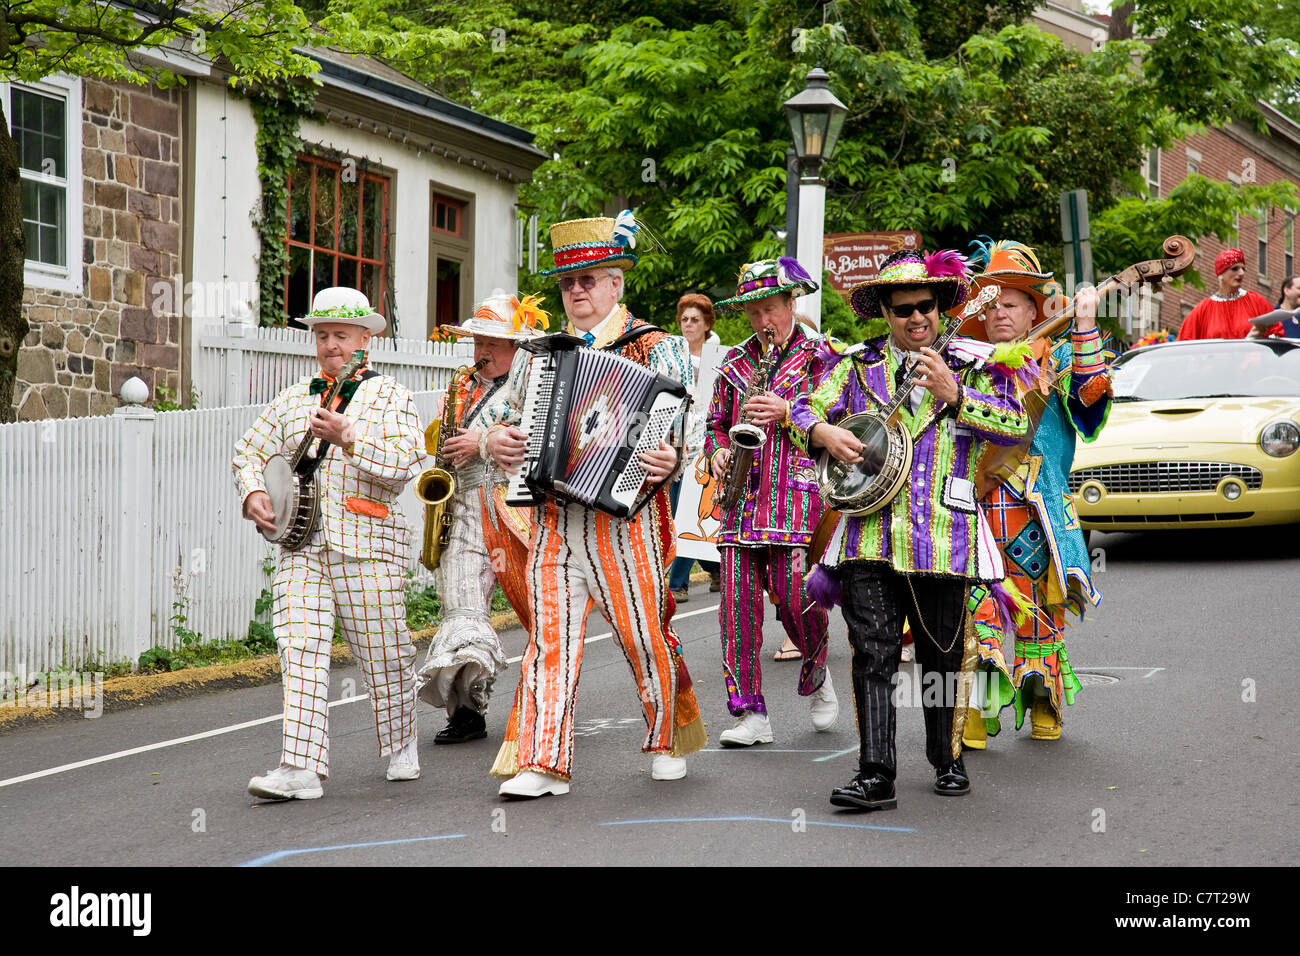 Mummers performing at the New Hope Celebrates Day - Stock Image